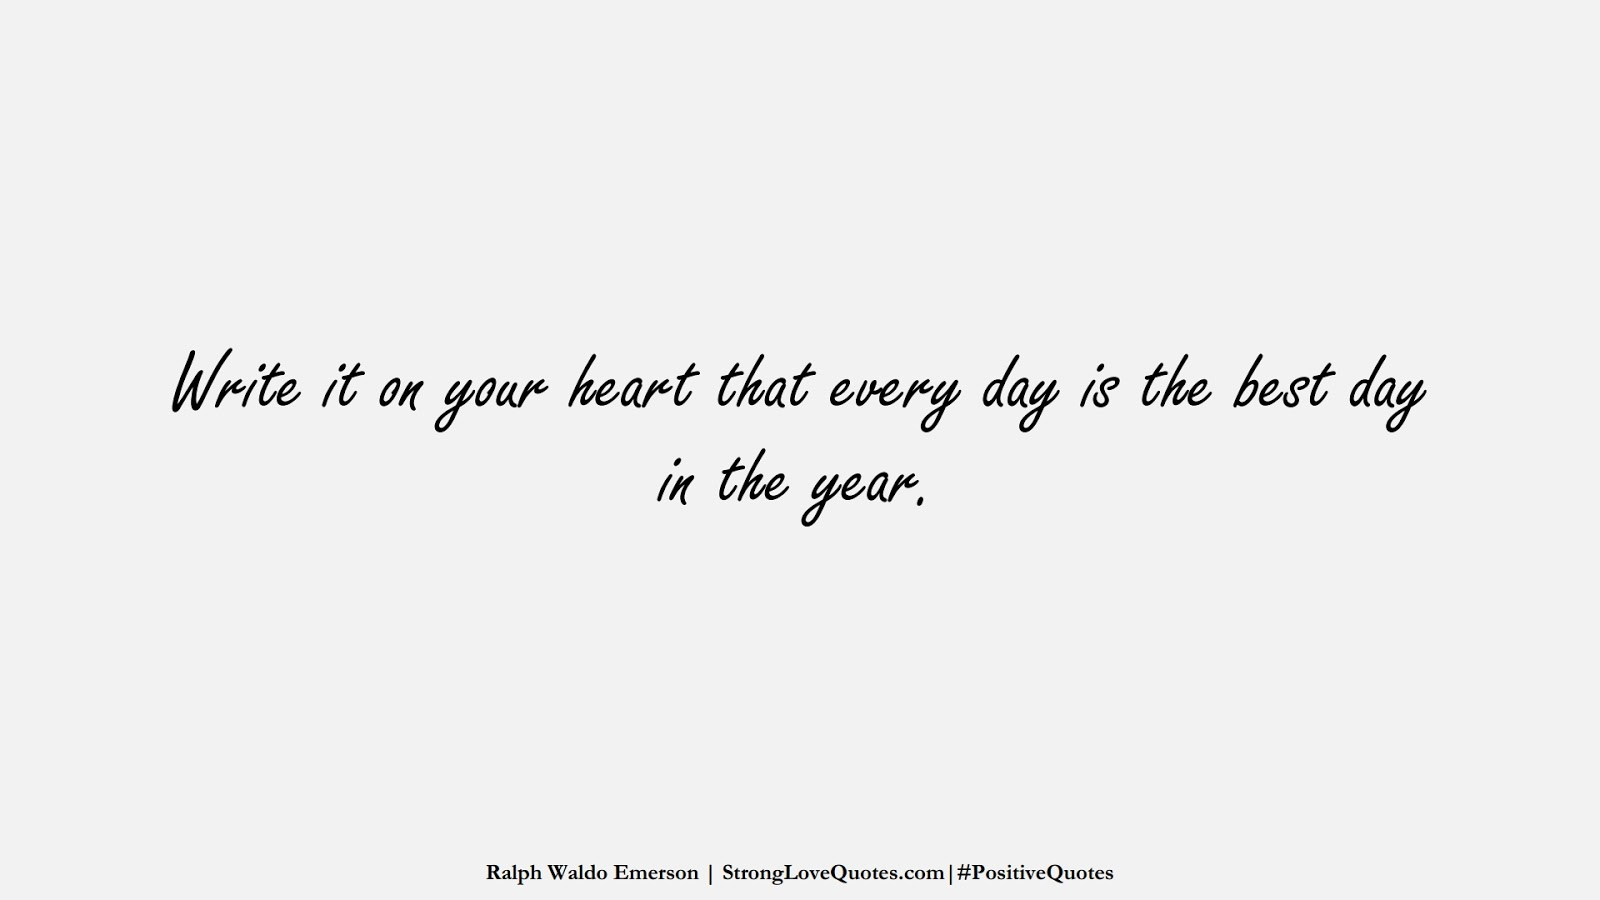 Write it on your heart that every day is the best day in the year. (Ralph Waldo Emerson);  #PositiveQuotes